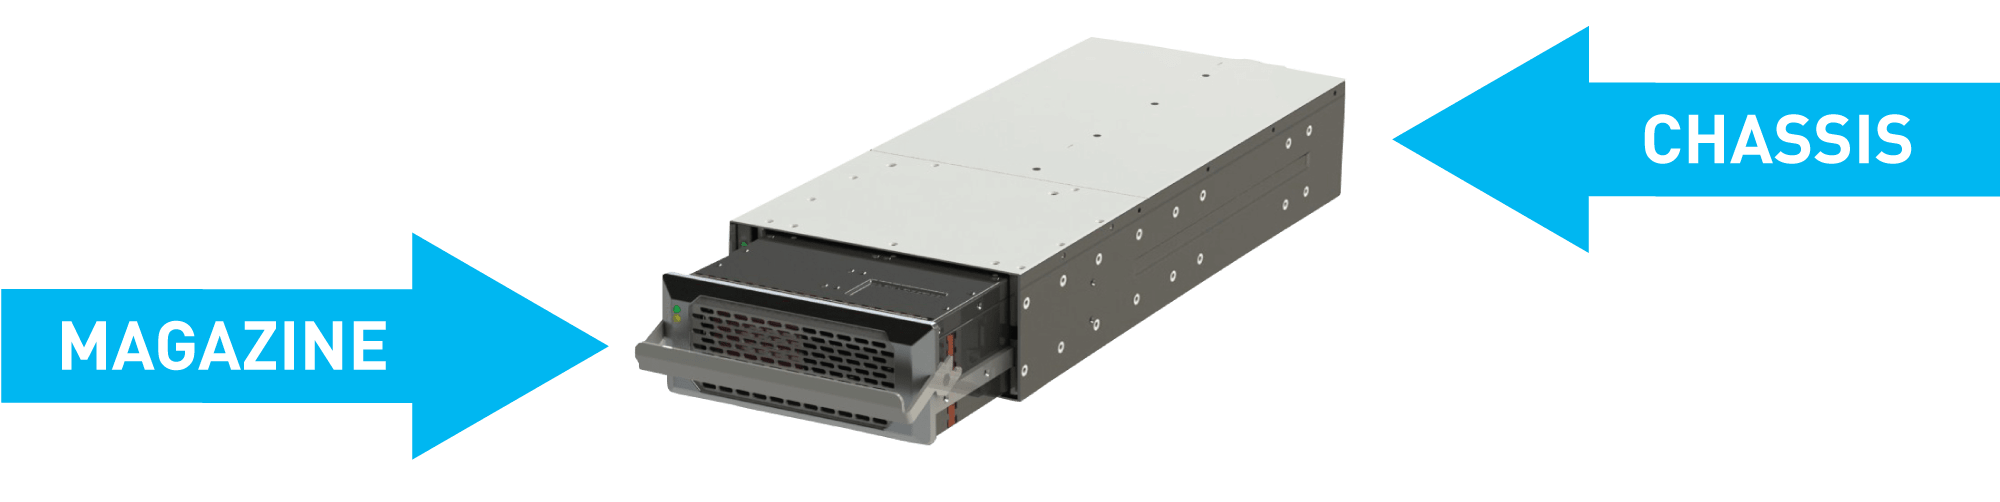 R-Series Chassis and Removable Drive